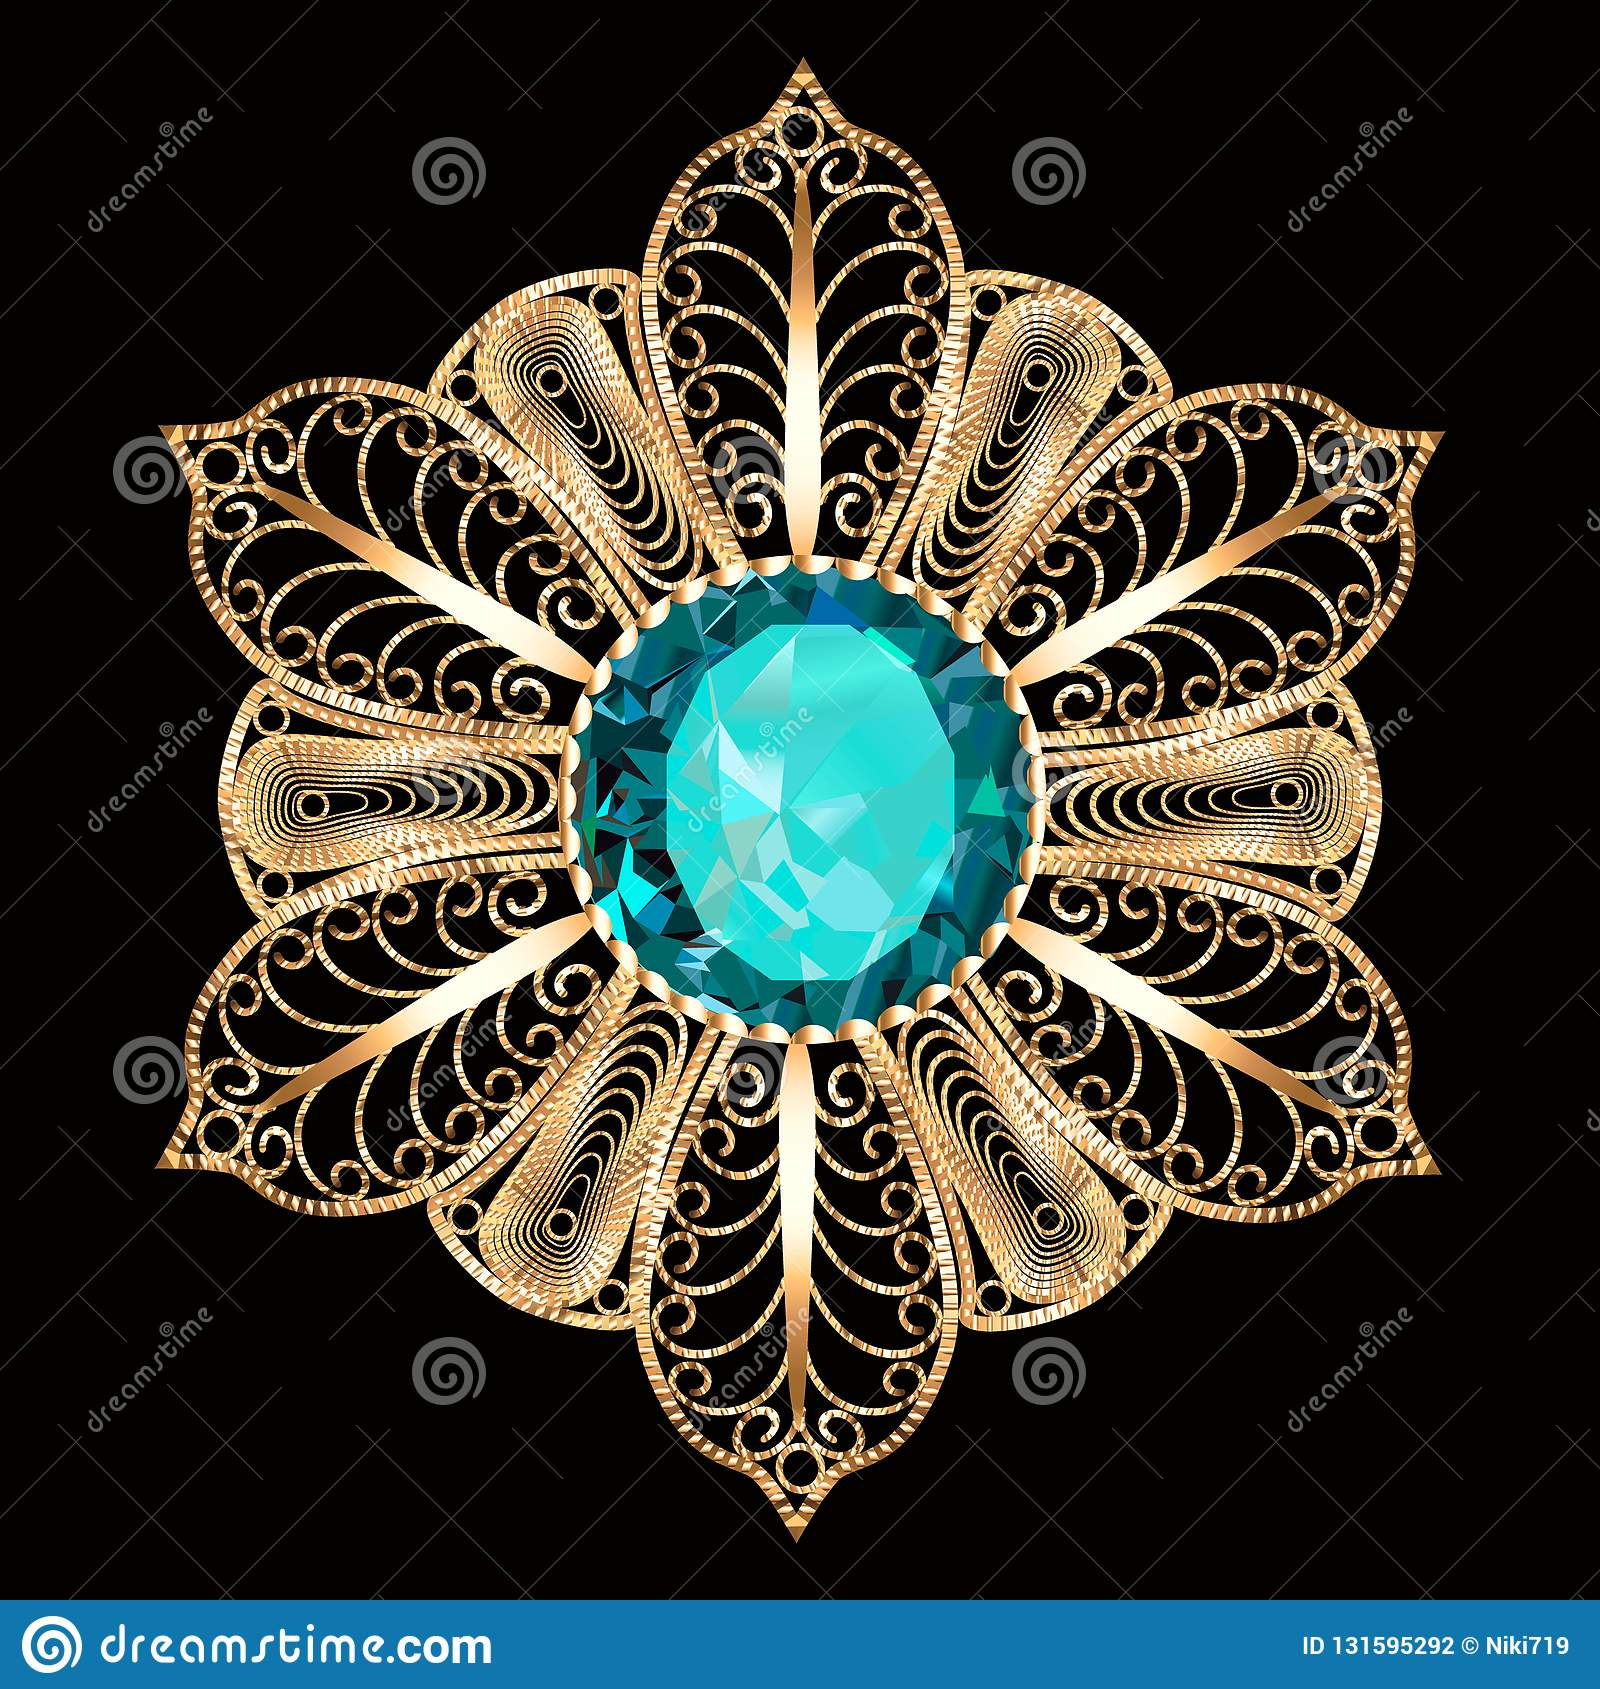 brooch pendant with and precious stones. Filigree victorian jewelry. Design element